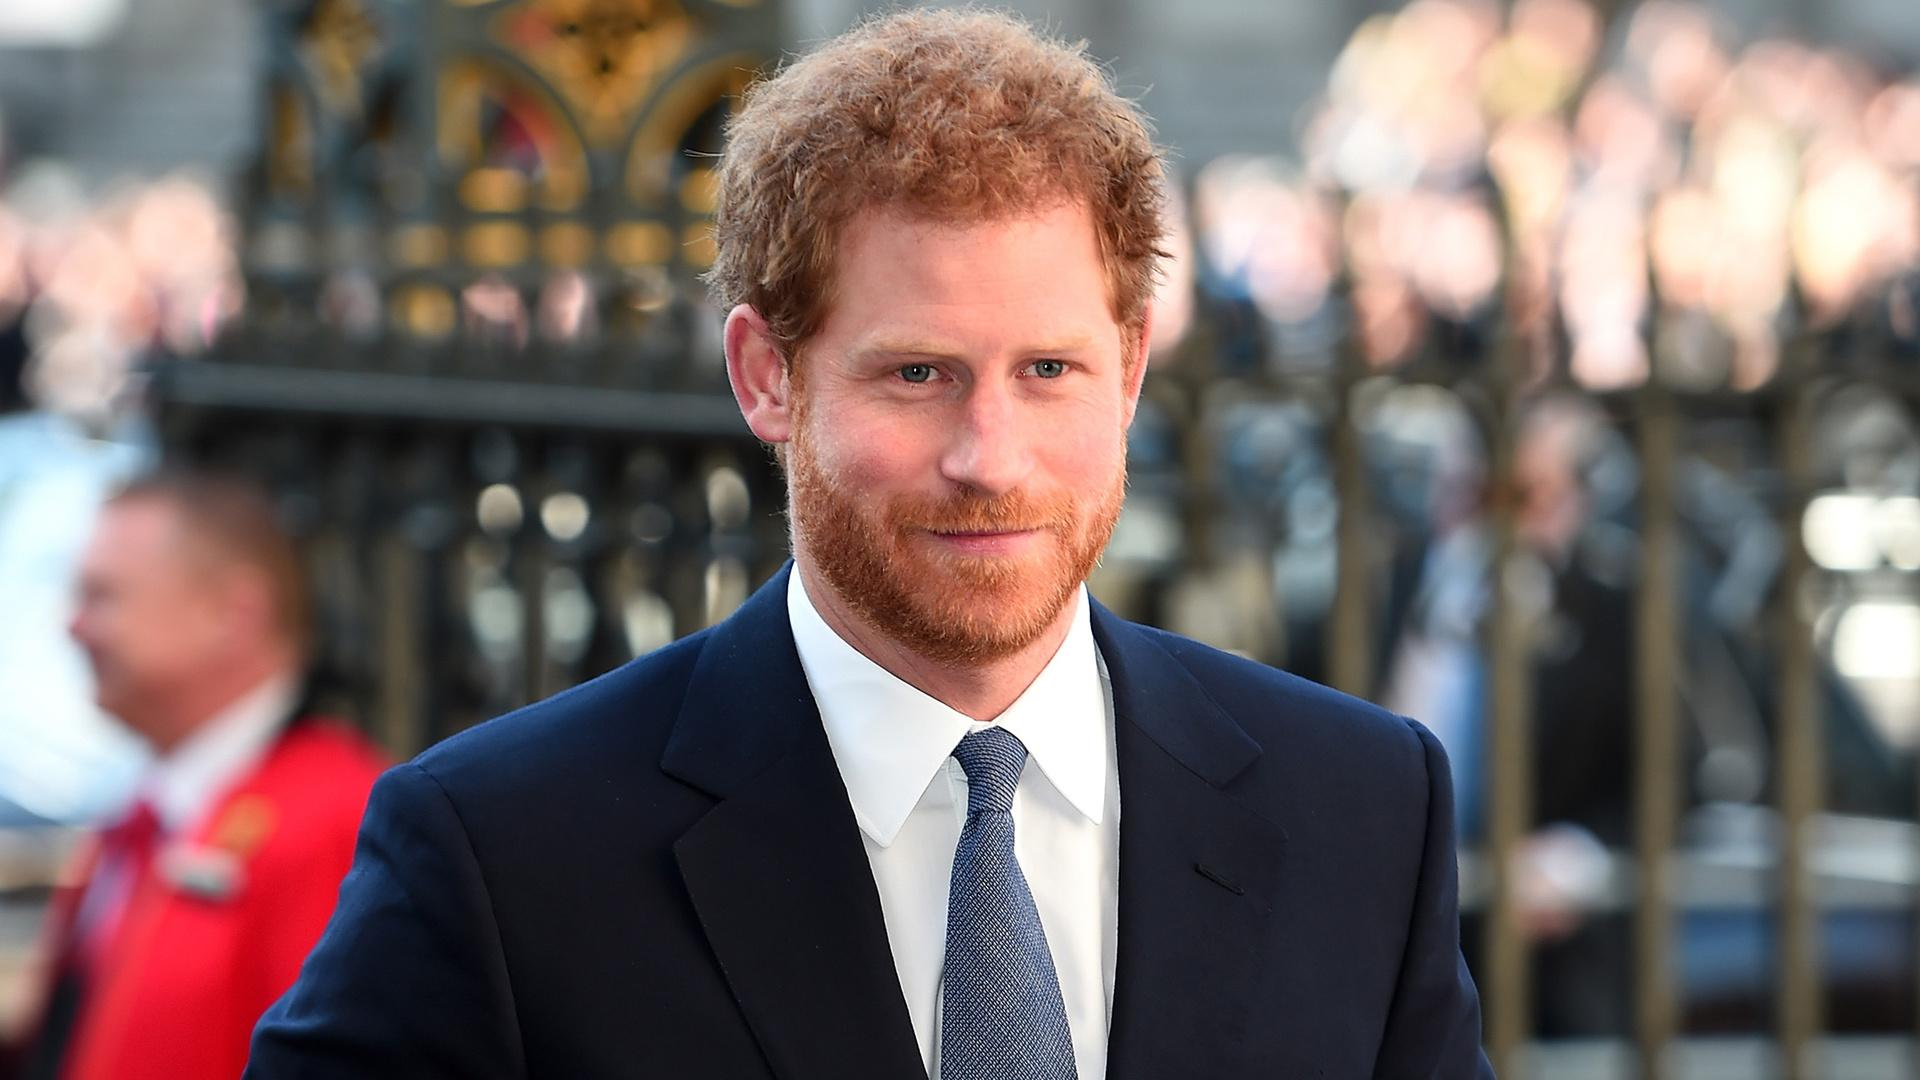 Prince Harry Made a Sweet Visit to Leeds Children's Hospital to Address the Mental Well-Being of Young People